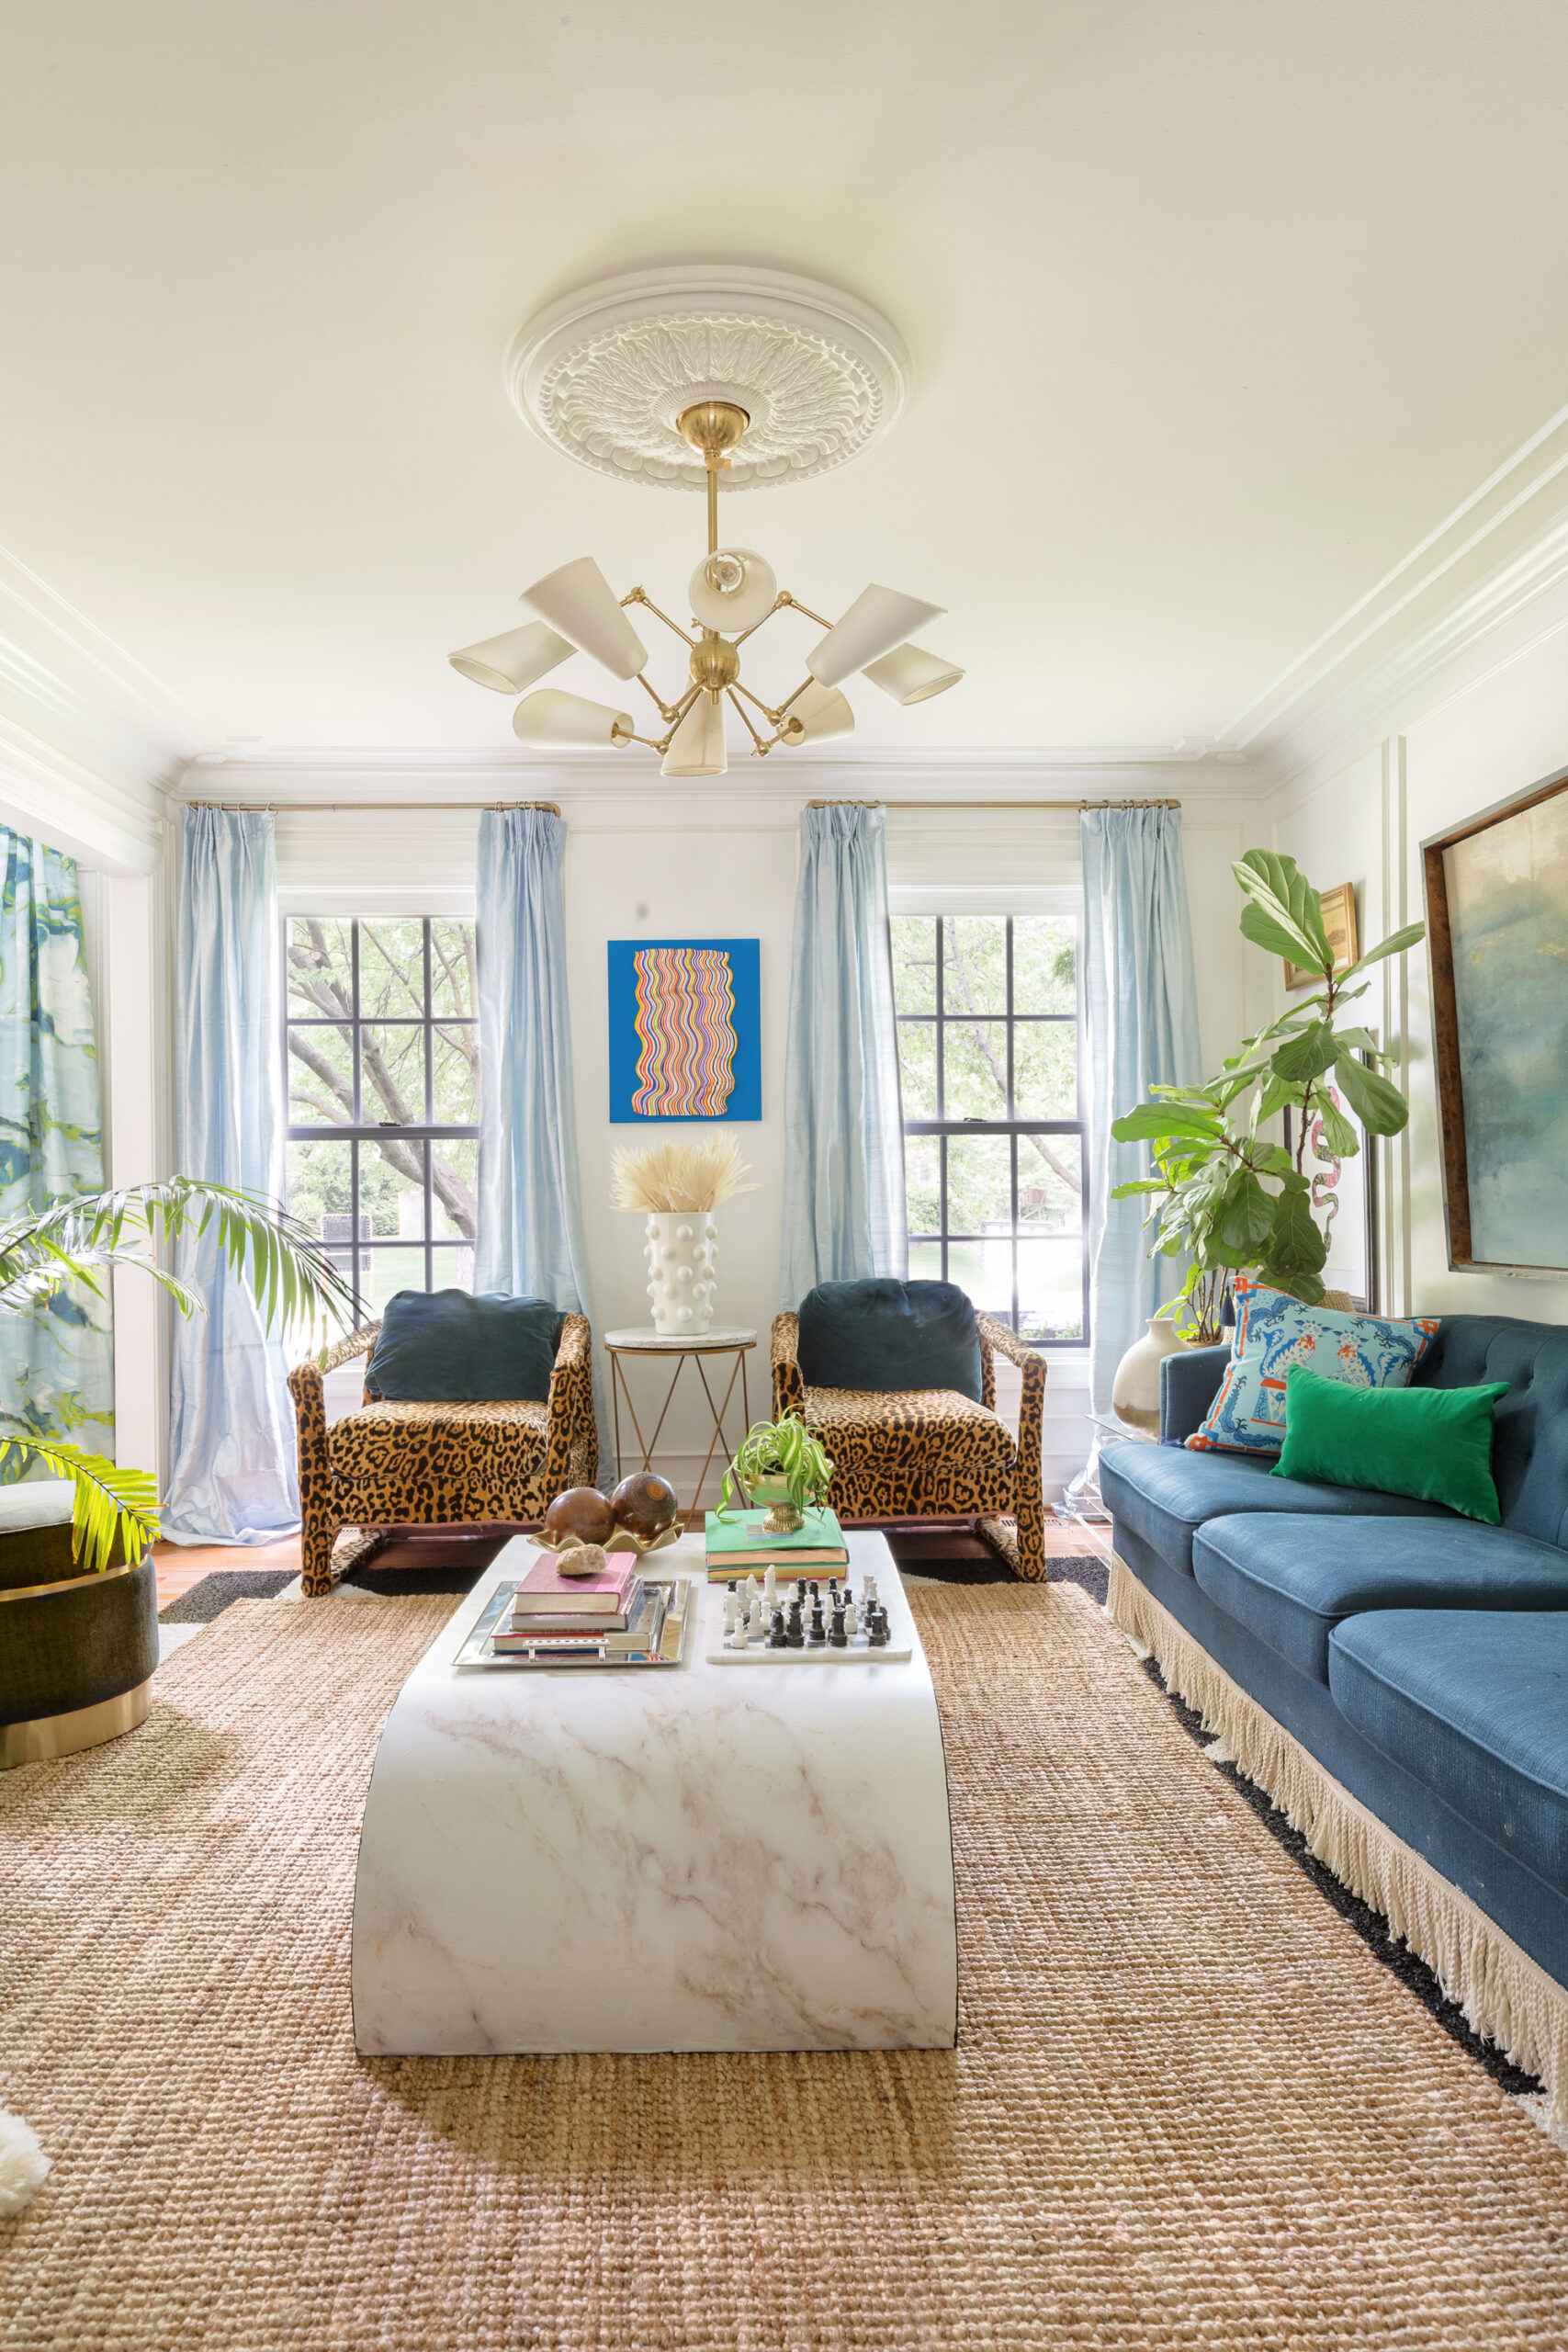 return on art, Derick Smith, Jessica Moritz, laundry room, one room challenge, entryway, leopard carpet, living room, leopard chairs